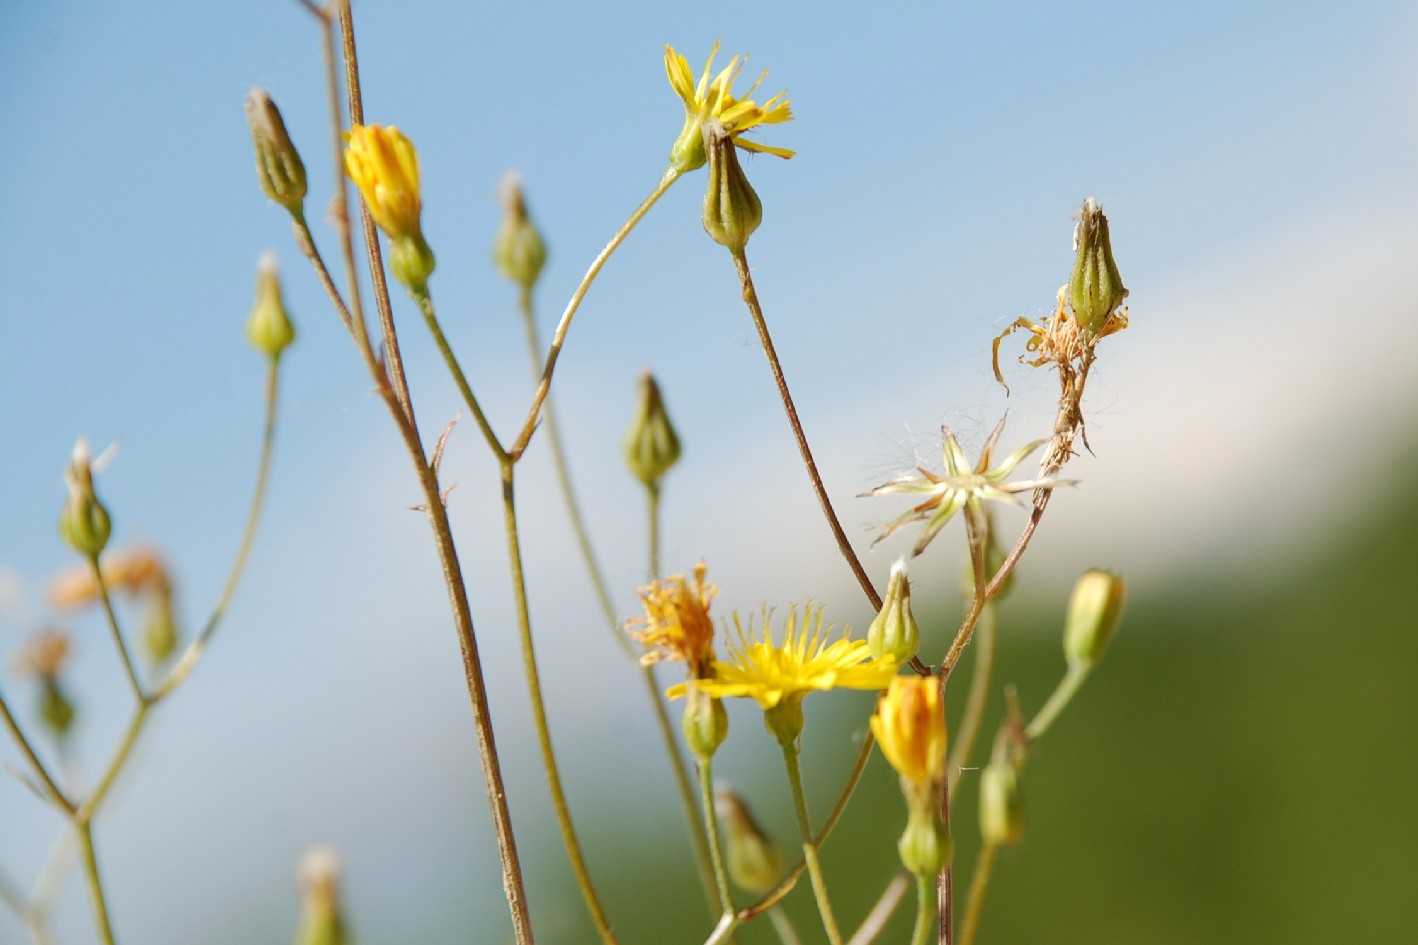 Crepis neglecta subsp. neglecta 23